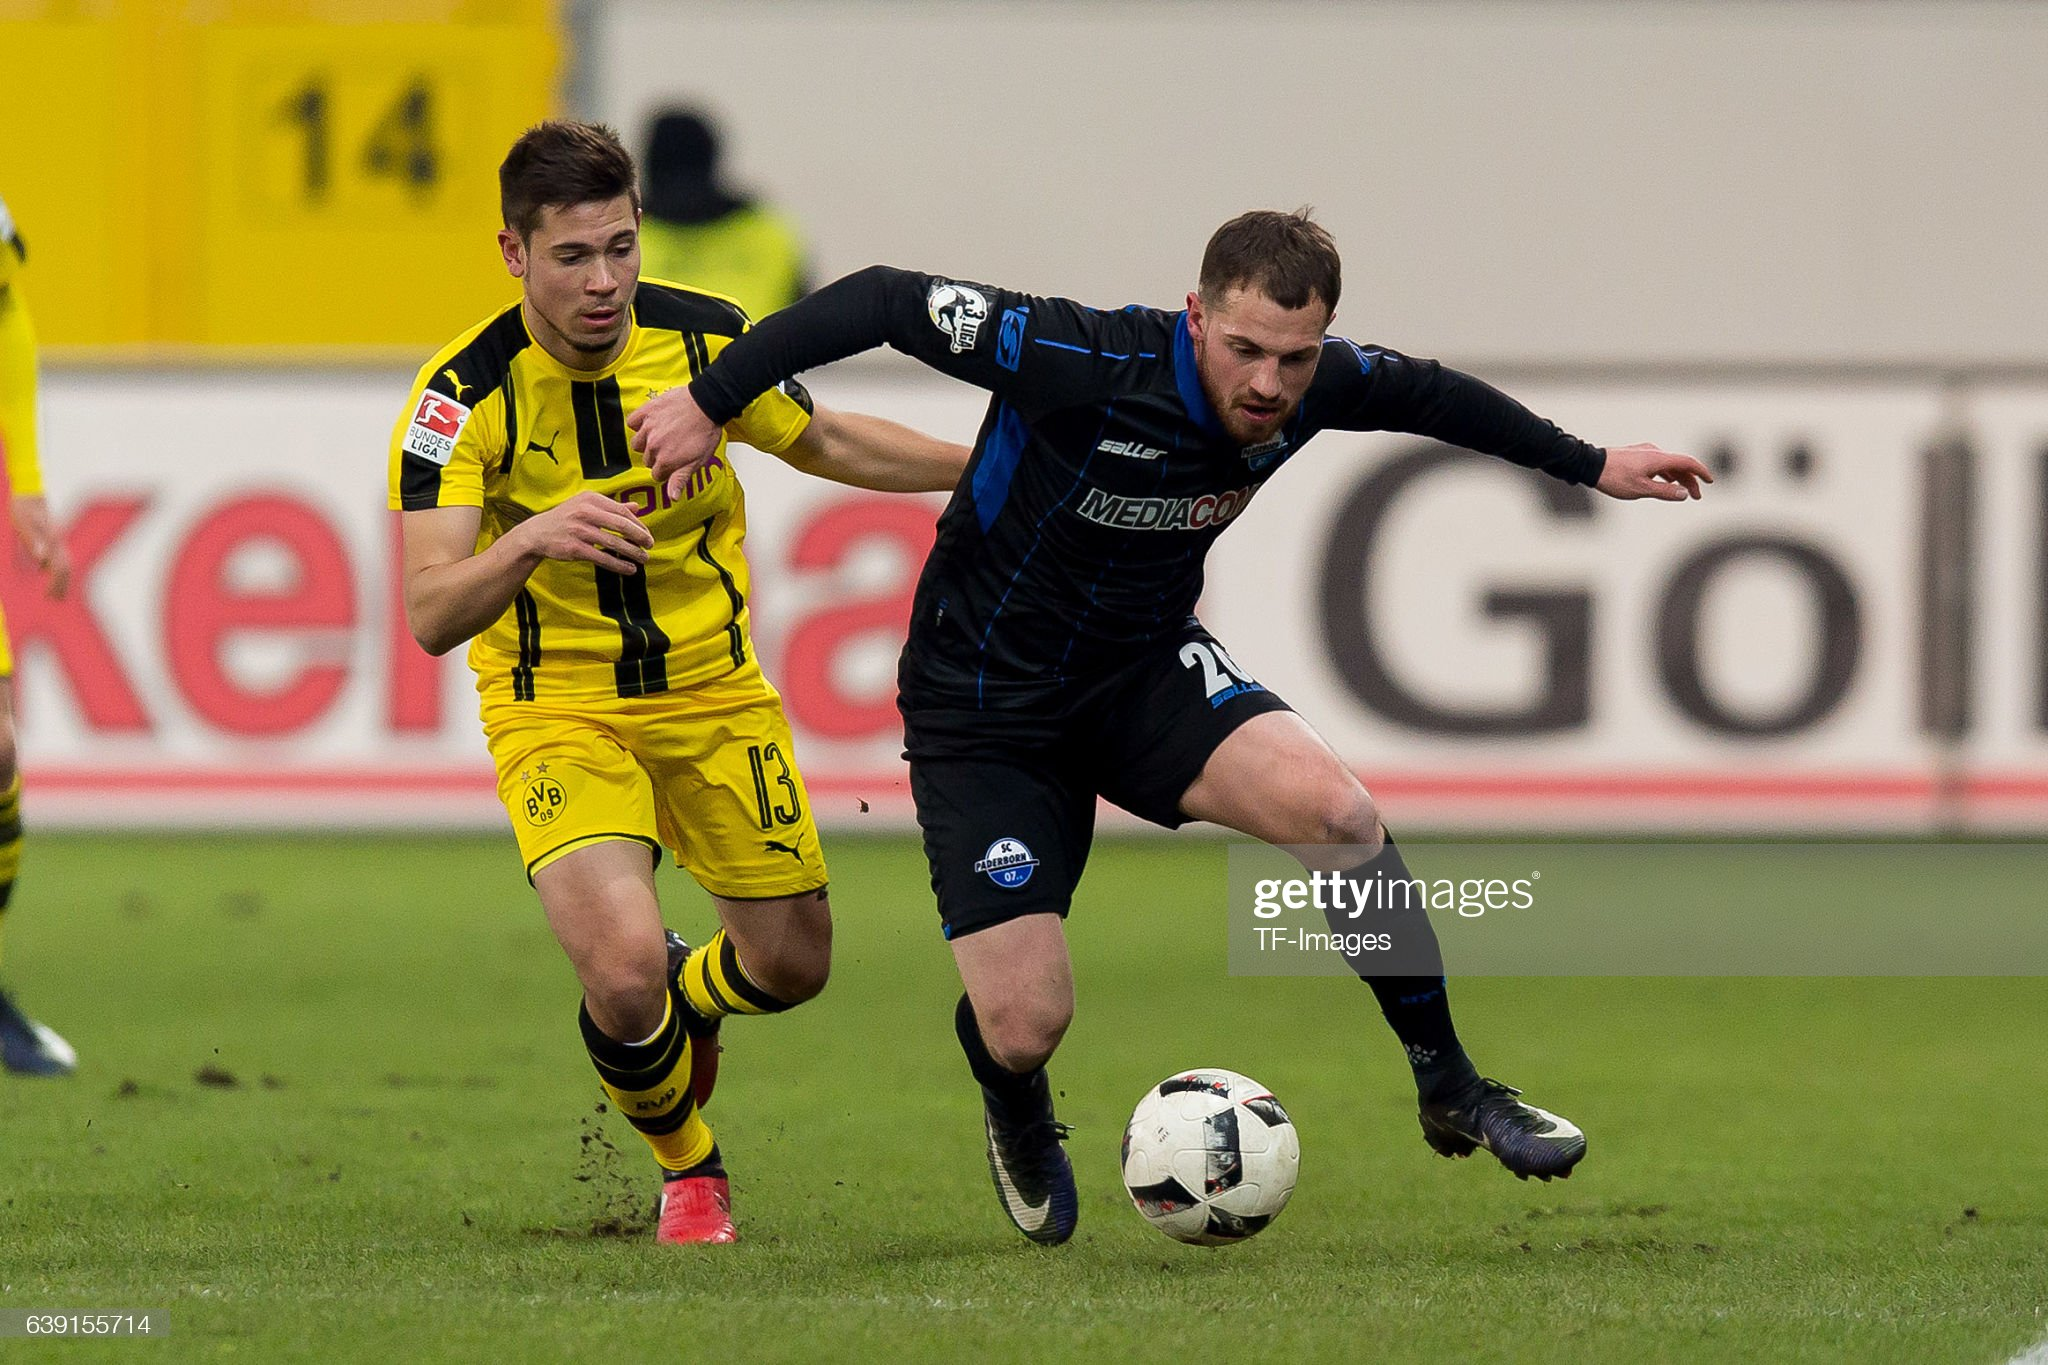 Paderborn v Dortmund Preview, prediction and odds